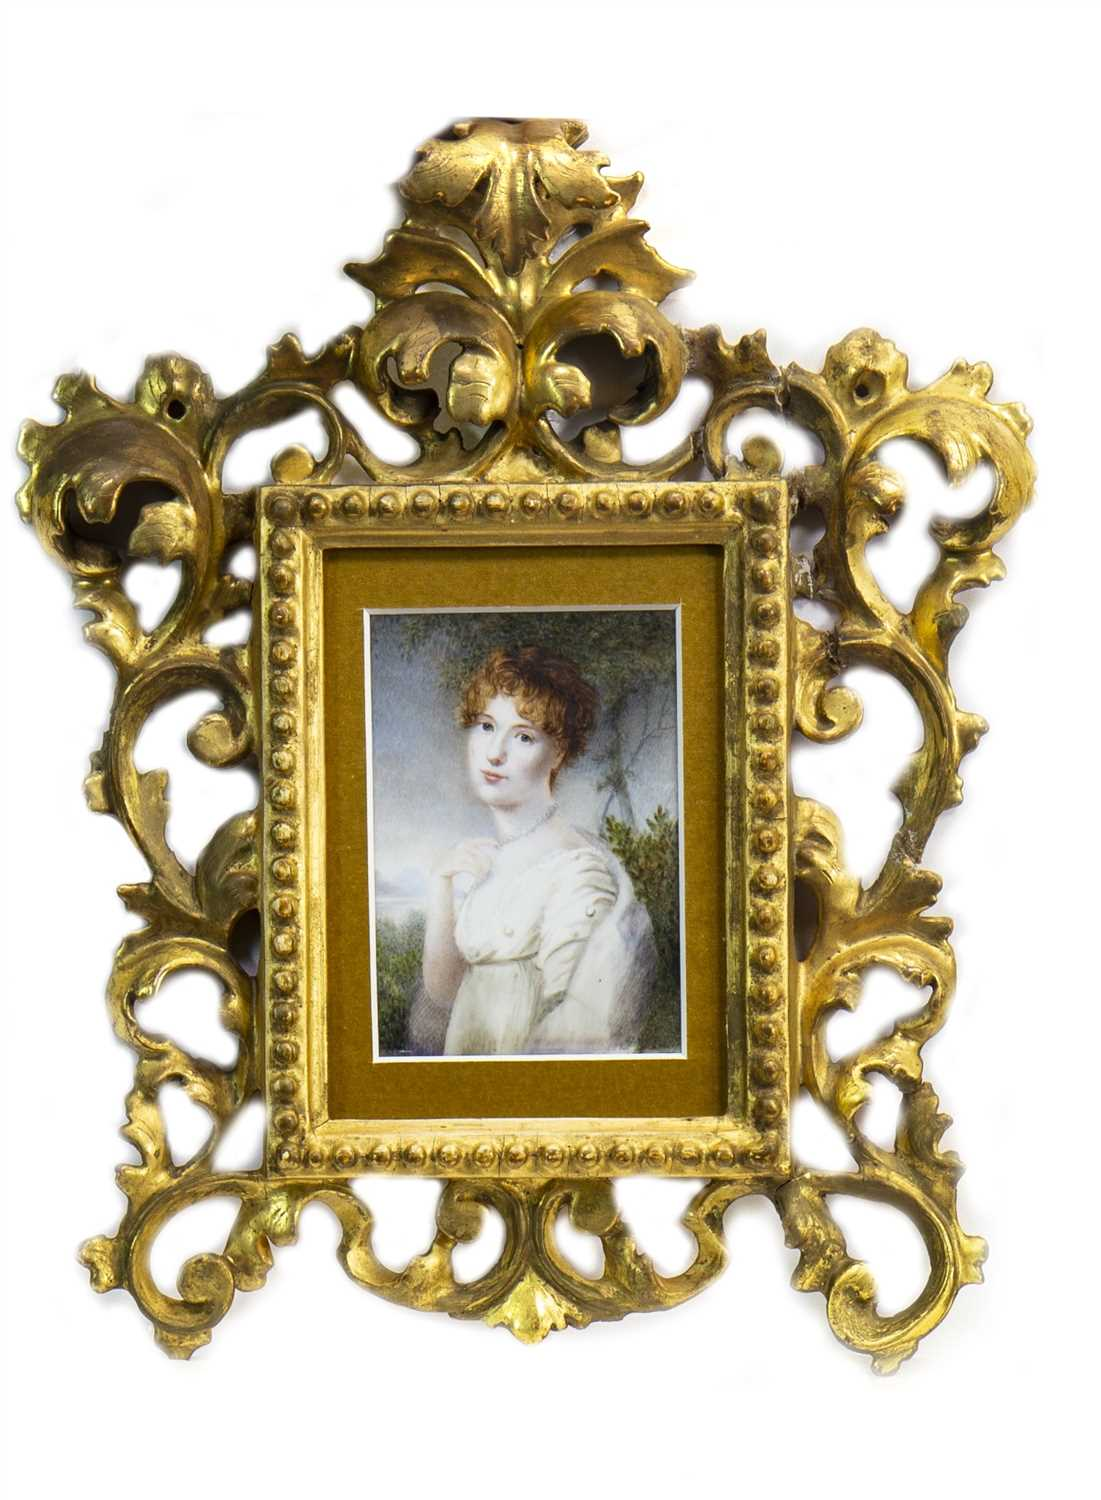 Lot 428-PORTRAIT OF A YOUNG LADY, IN THE STYLE OF FRANCIS COTES